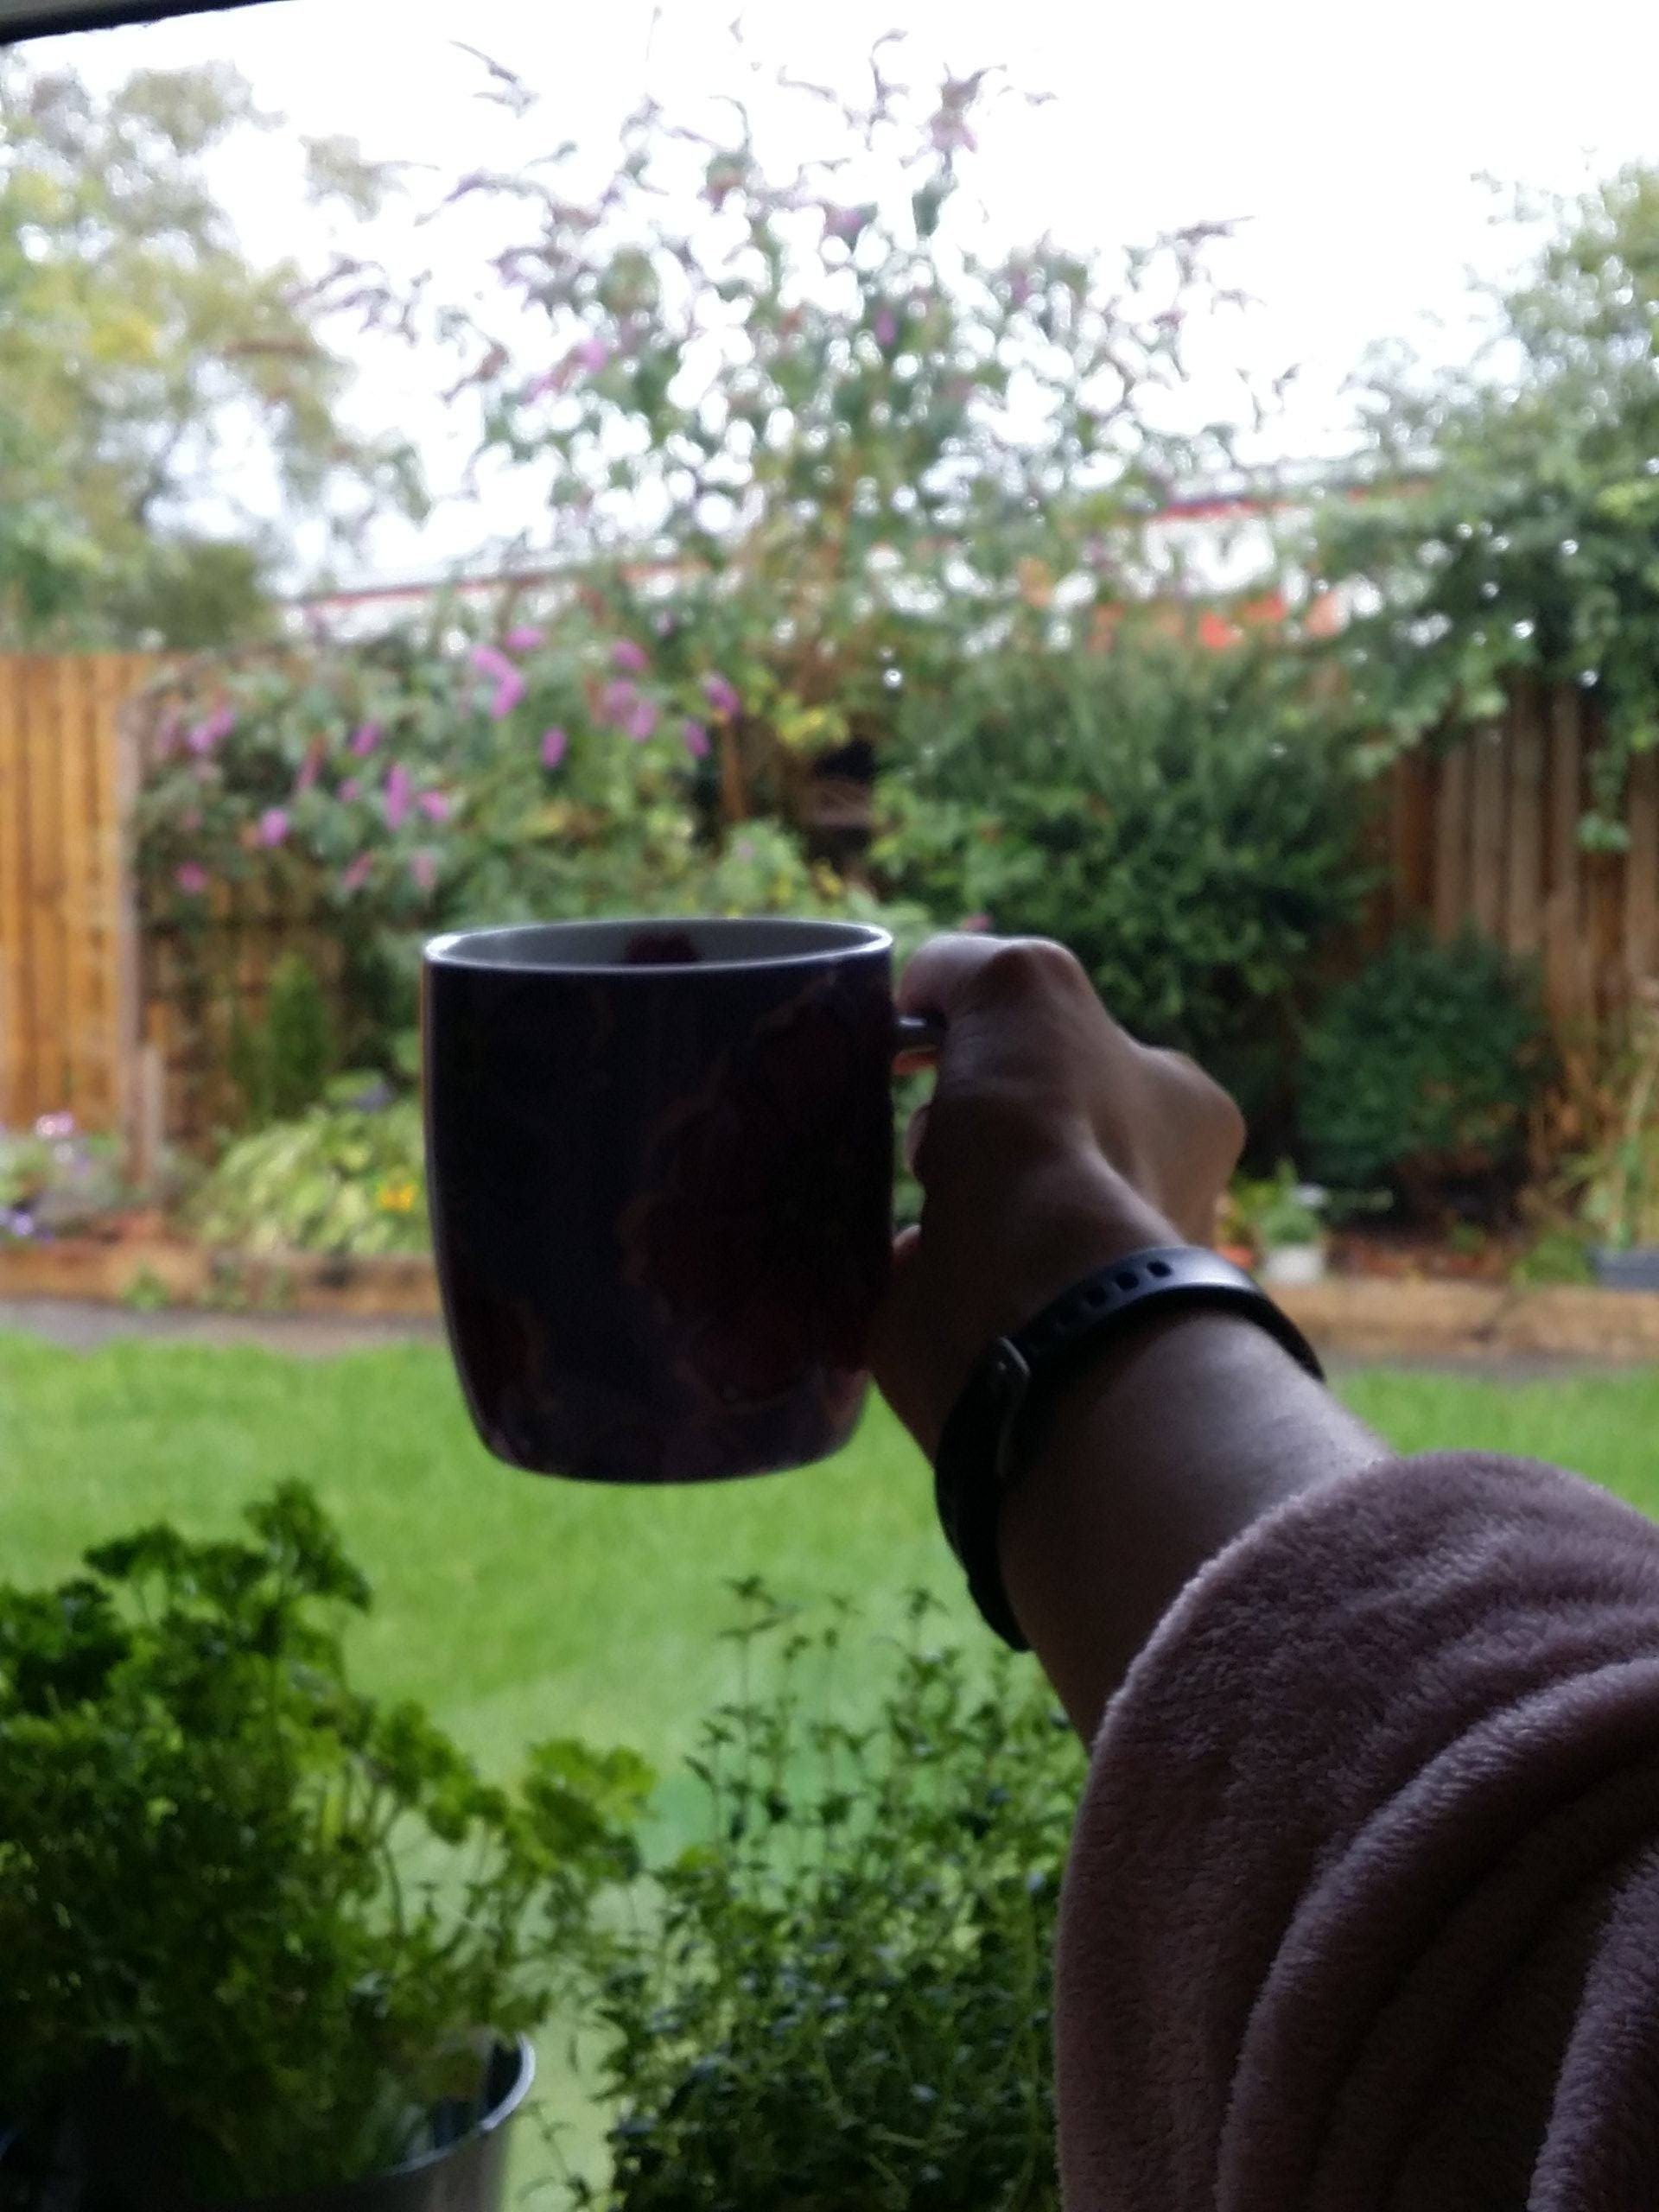 holding up a mug of coffee in front of a window overlooking a very green garden